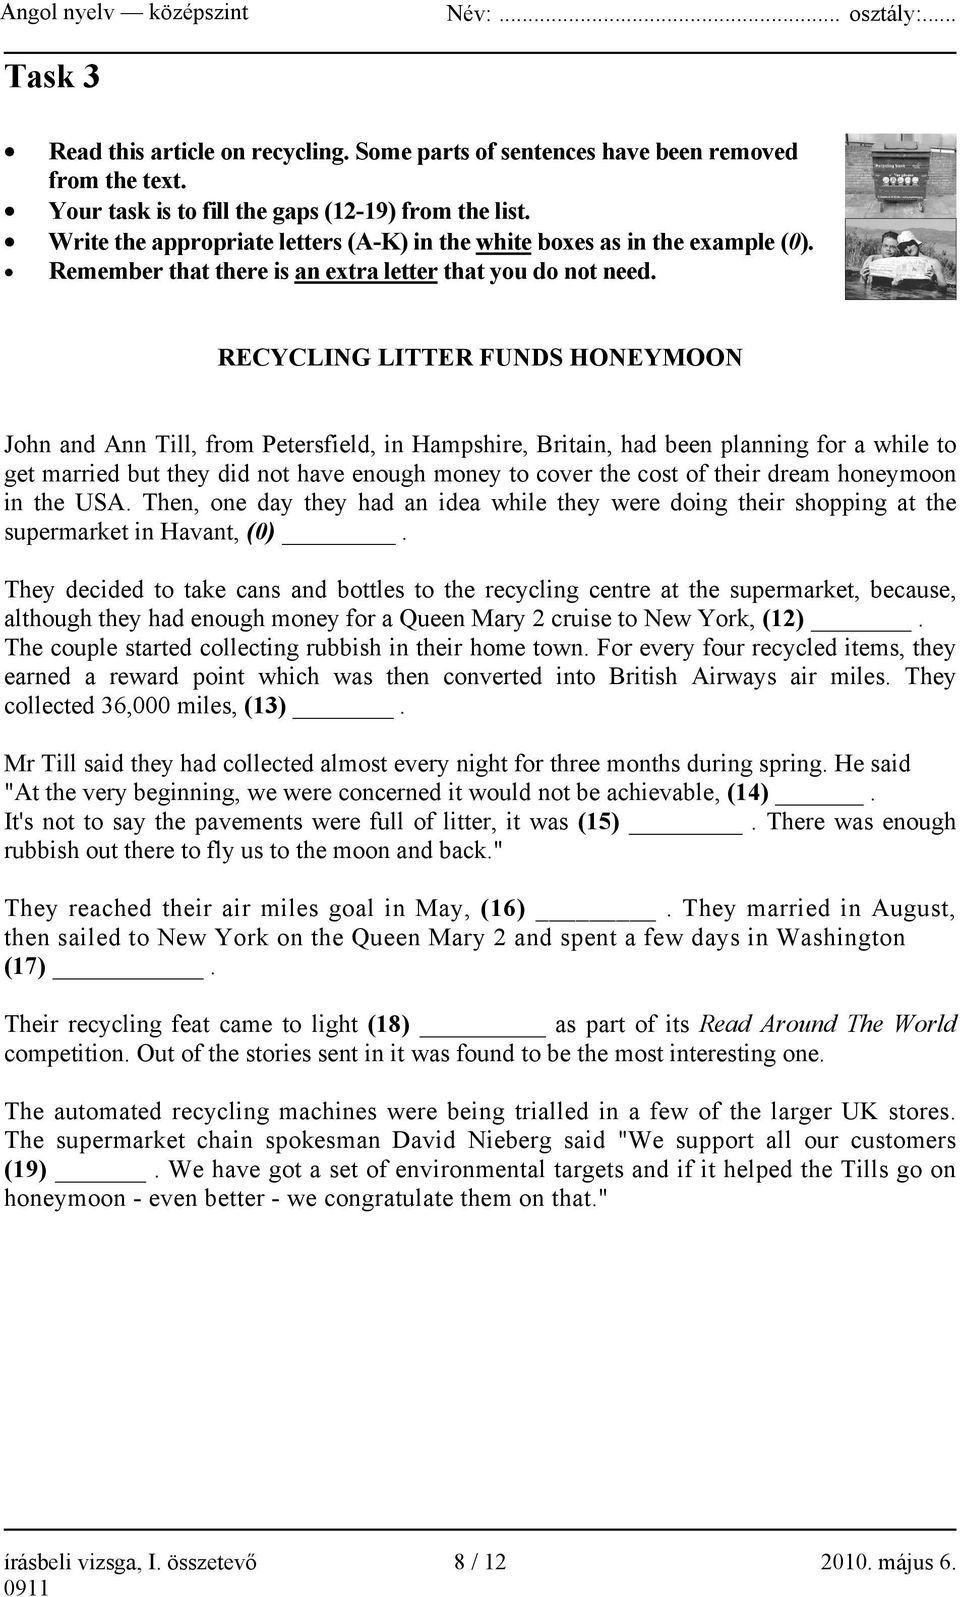 RECYCLING LITTER FUNDS HONEYMOON John and Ann Till, from Petersfield, in Hampshire, Britain, had been planning for a while to get married but they did not have enough money to cover the cost of their